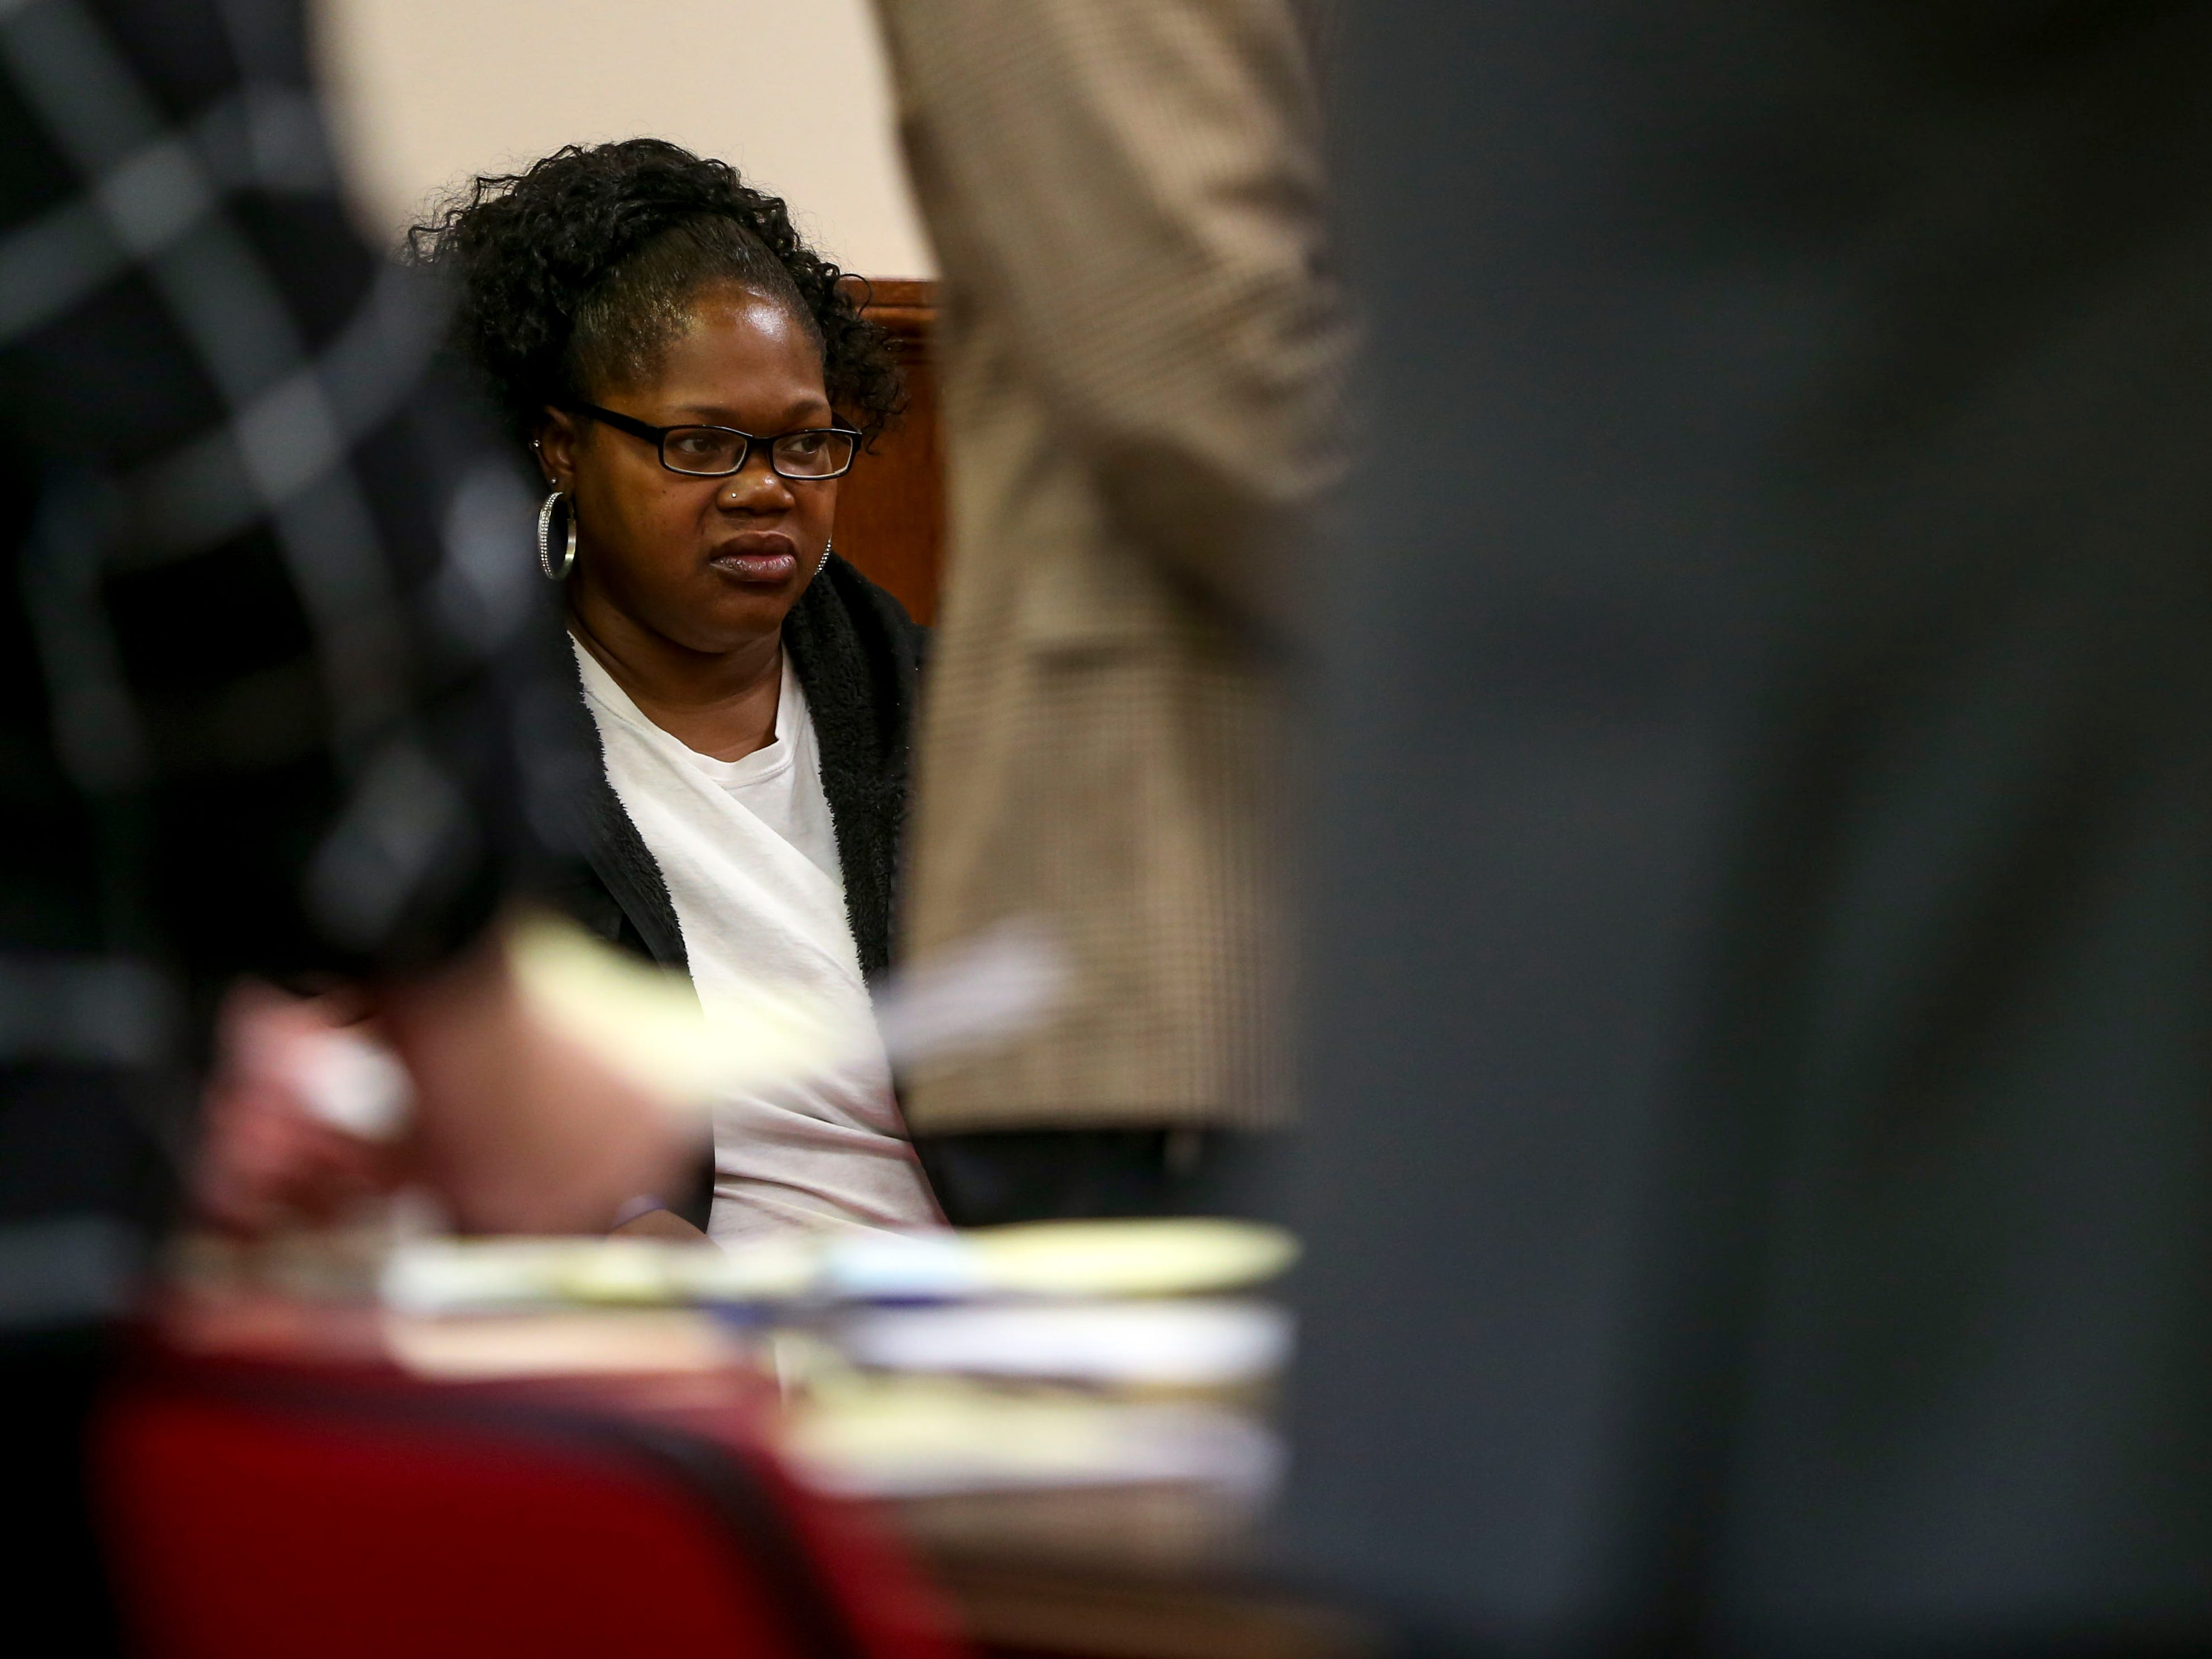 Alicia Hassell glares towards Keon Stewart at a court appearance for Stewart at Jackson City Court in Jackson, Tenn., on Thursday, Nov. 15, 2018.